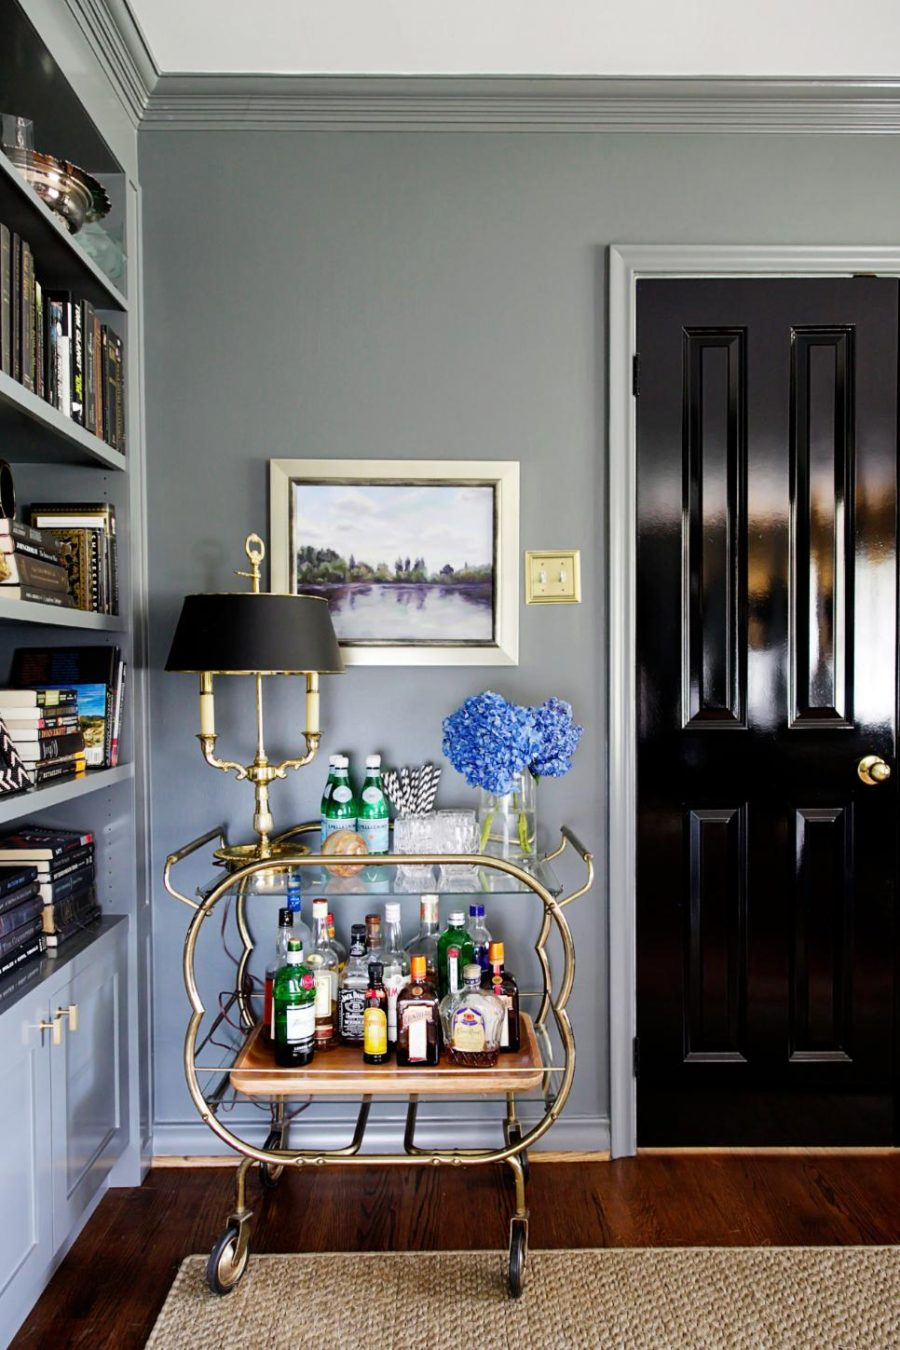 Elegant bar cart by Brooke Inabnett